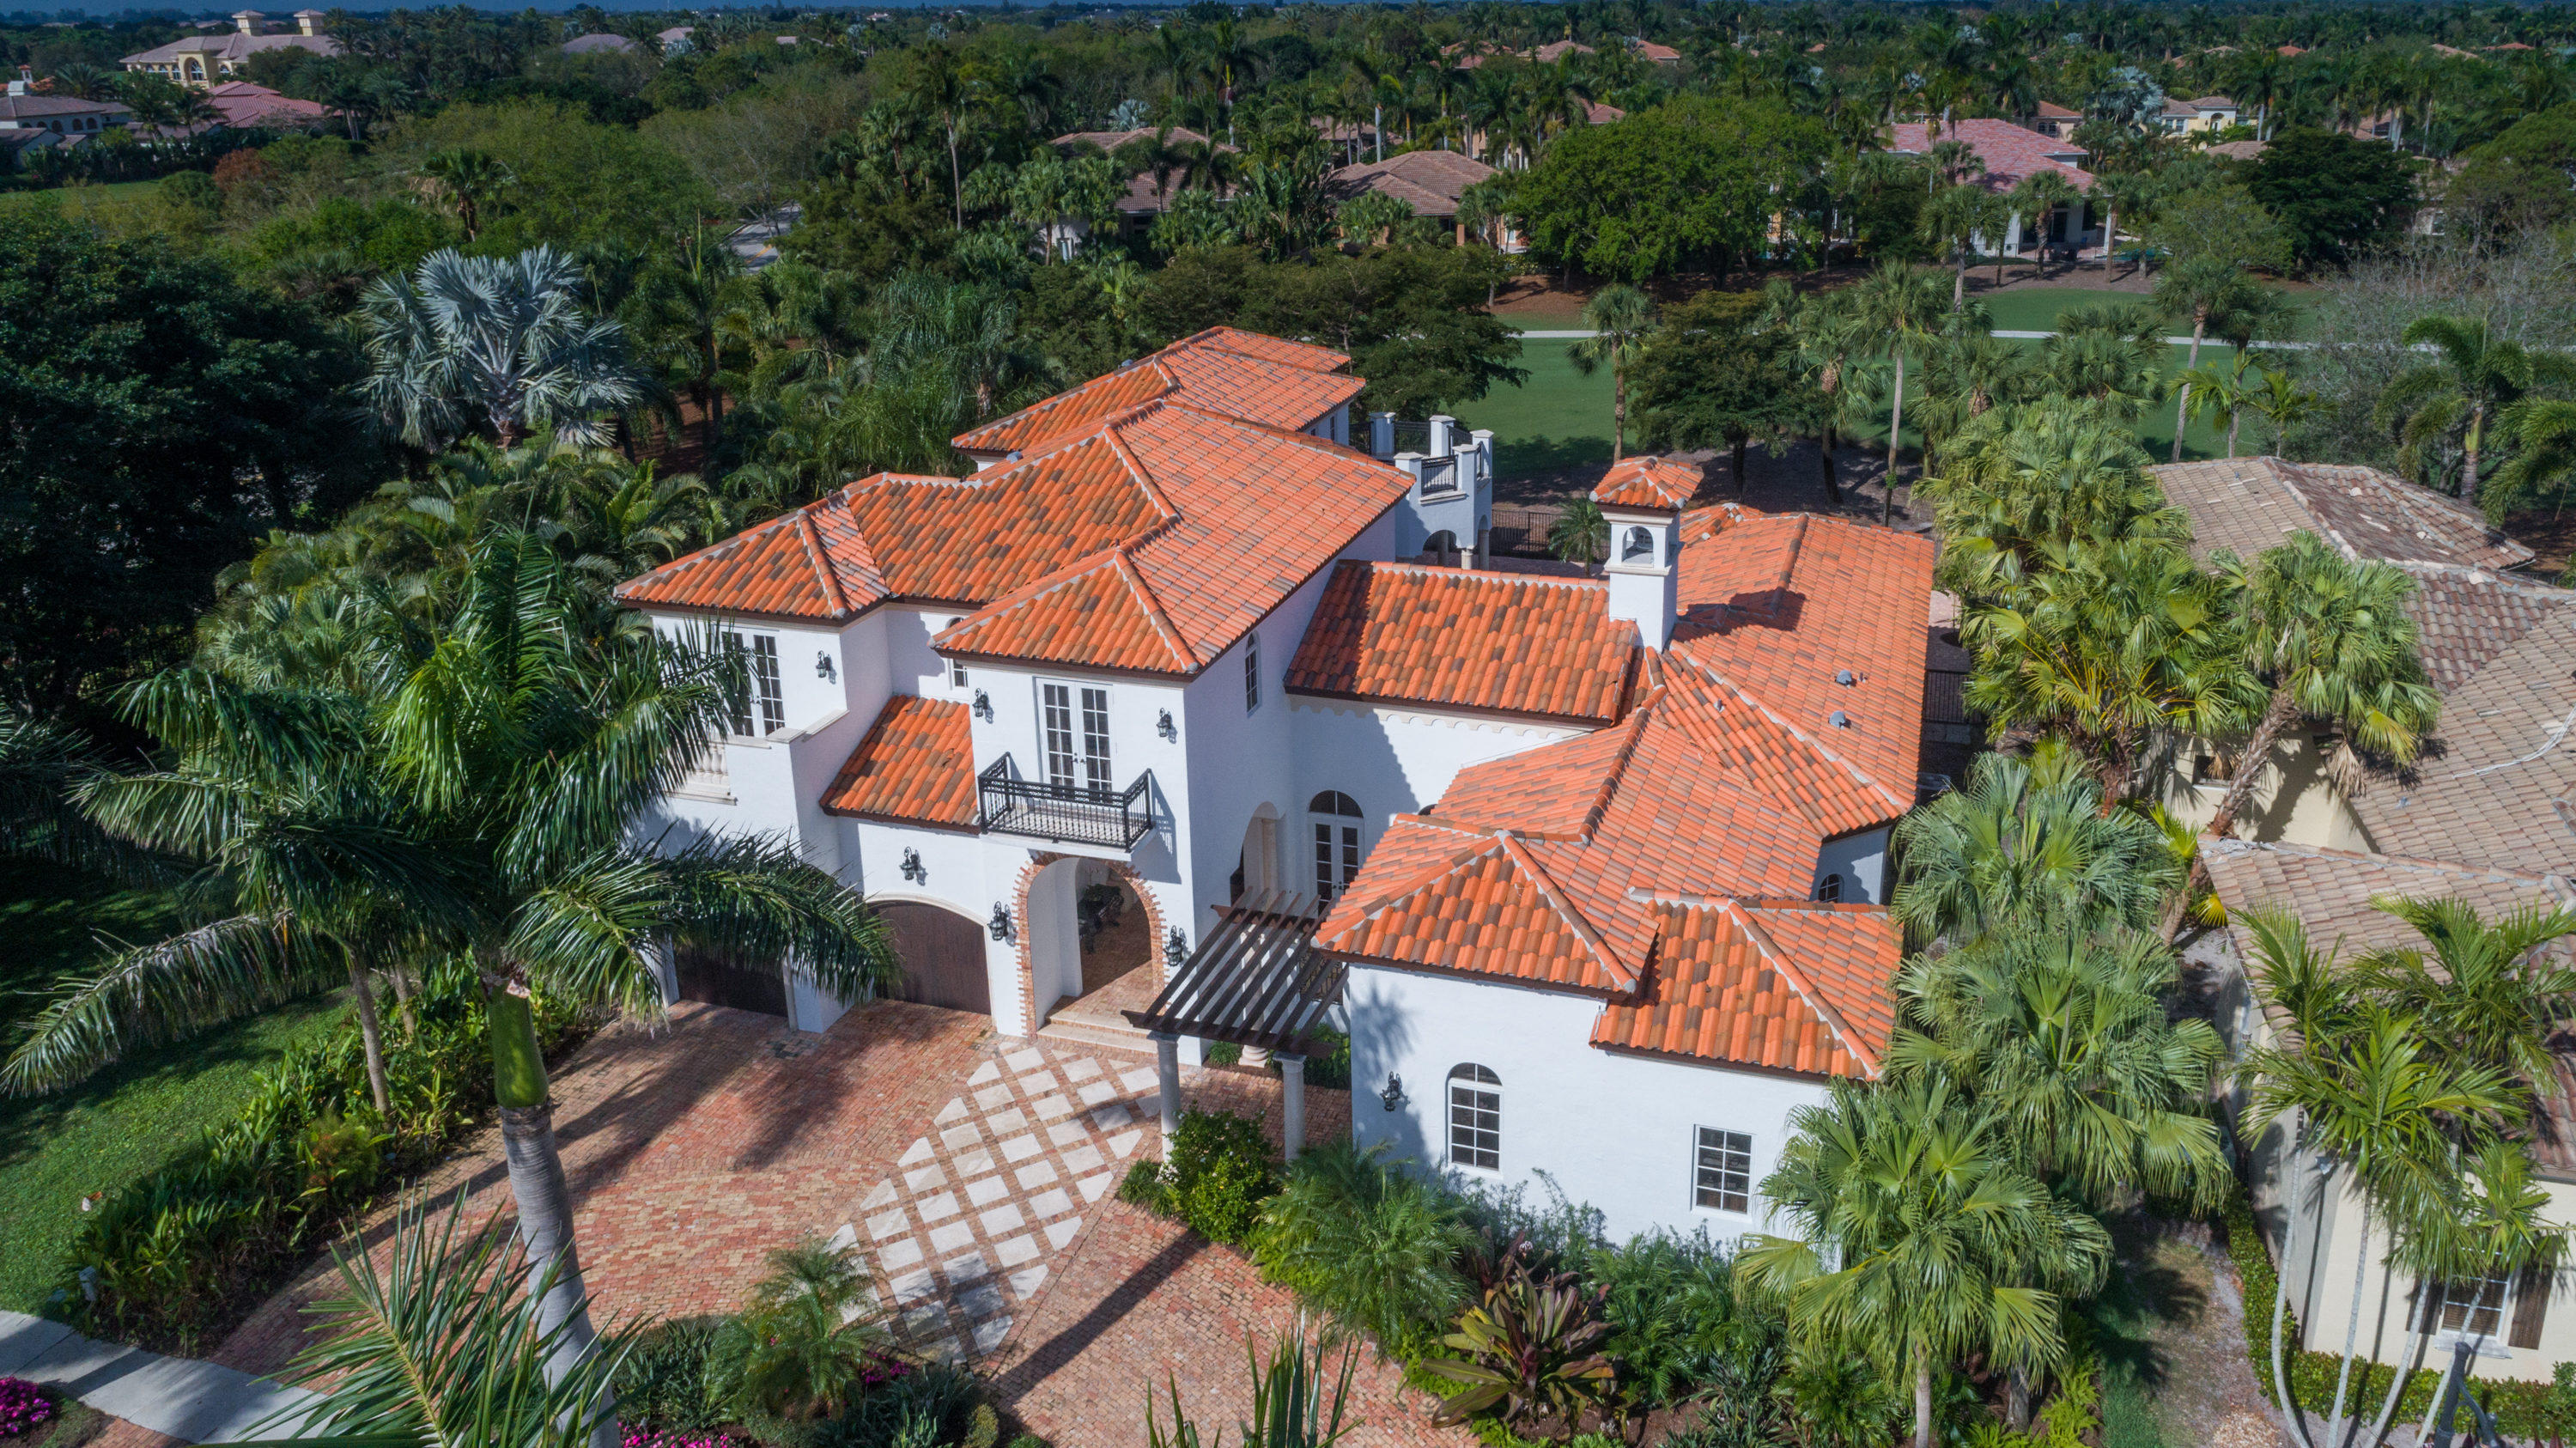 MOTIVATED SELLER. Situated on a corner lot with golf course views in the desired Capri section of the prestigious Mizner Country Club is this extraordinary residence of 4 bedrooms, 4.2 bath plus office and theater room. Custom built by Tuscan-Harvey Estate Homes, this home exhibits quality and elegance. When you enter you are greeted with soaring ceilings, a 700 bottle climate controlled wine closet, and a rounded staircase, with beautiful Spanish tile inlays, leading up to the second level. The formal living room with 6 foot stone mantle fireplace and cypress wood ceiling is sided by sets of french doors leading to a quiet fountain area or the custom beach entry pool and newly landscaped gardens. Custom built-in wood office is downstairs, making it a perfect place for quiet work or study. Dine in the formal dining room with arched windows and a butler pantry with a warming drawer. Chefs dream kitchen with large center island, Viking 6 burner gas stove, Sub Zero fridge, and lots of granite countertop space. The upstairs bedrooms offer plantation shutters and outdoor access with french doors & private balcony. Exit the home to your own tropical paradise. Redone patio/pool deck includes a summer kitchen and a heated beach entry pool that has a separate waterfall spa to refresh and relax all year. The 500 gallon propane tank operates the pool heater, grill, home generator and Viking oven/stove.